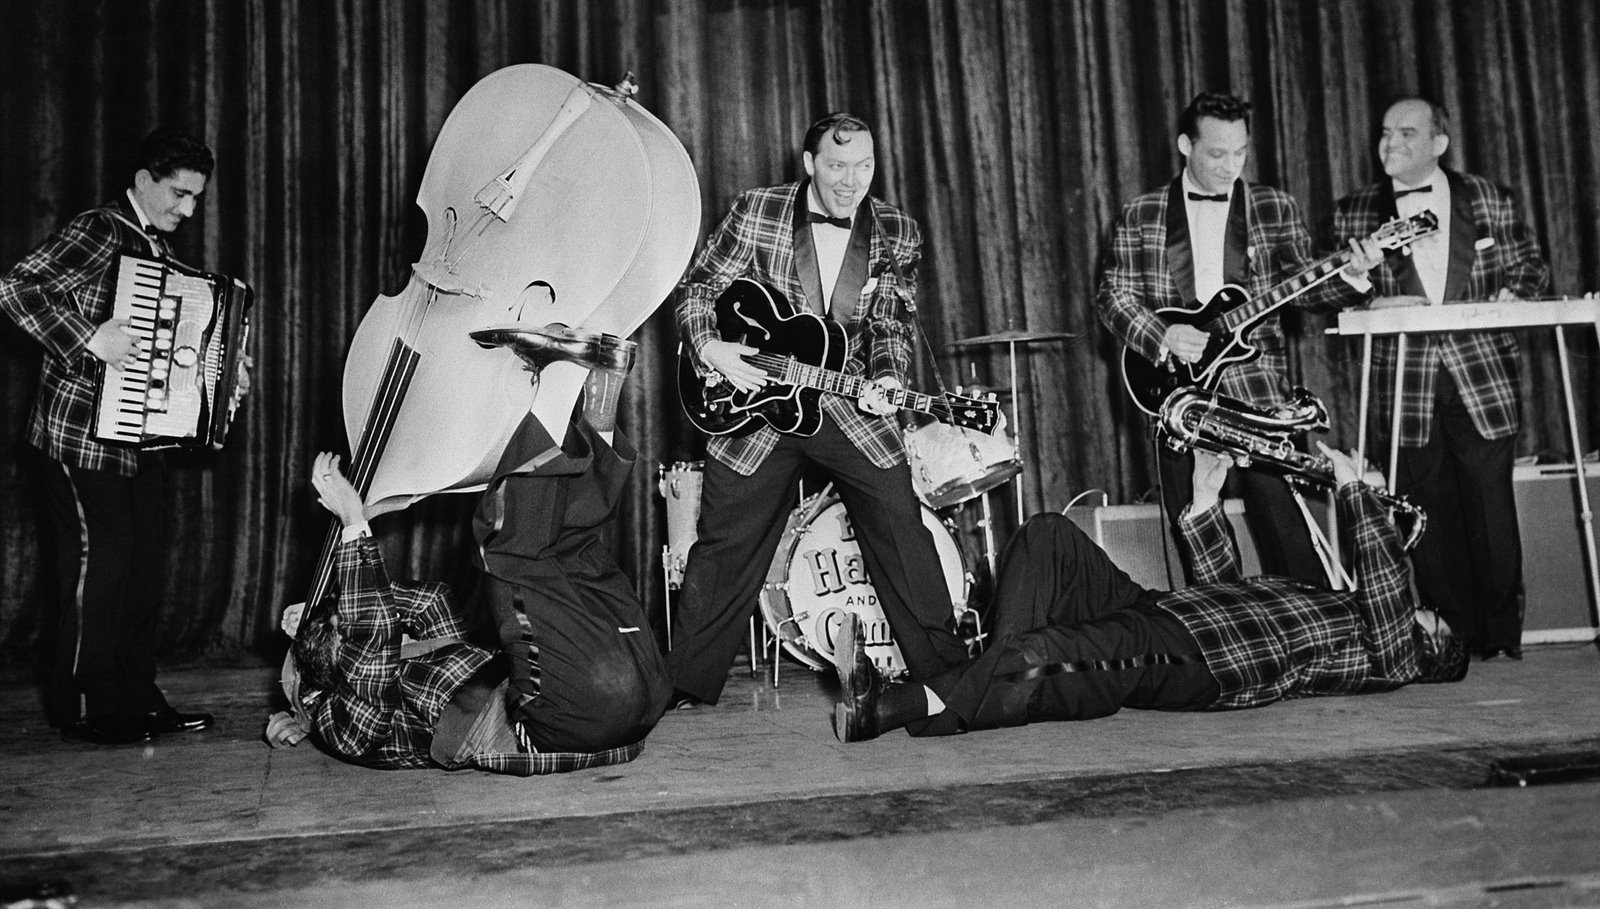 Bill Haley & His Comets rehearse at the Dominion Theatre in London, where they will open their British tour. The Comets include accordion player Johnnie Grande, bassist Al Rex, and saxophonist Ruddy Pompilli.